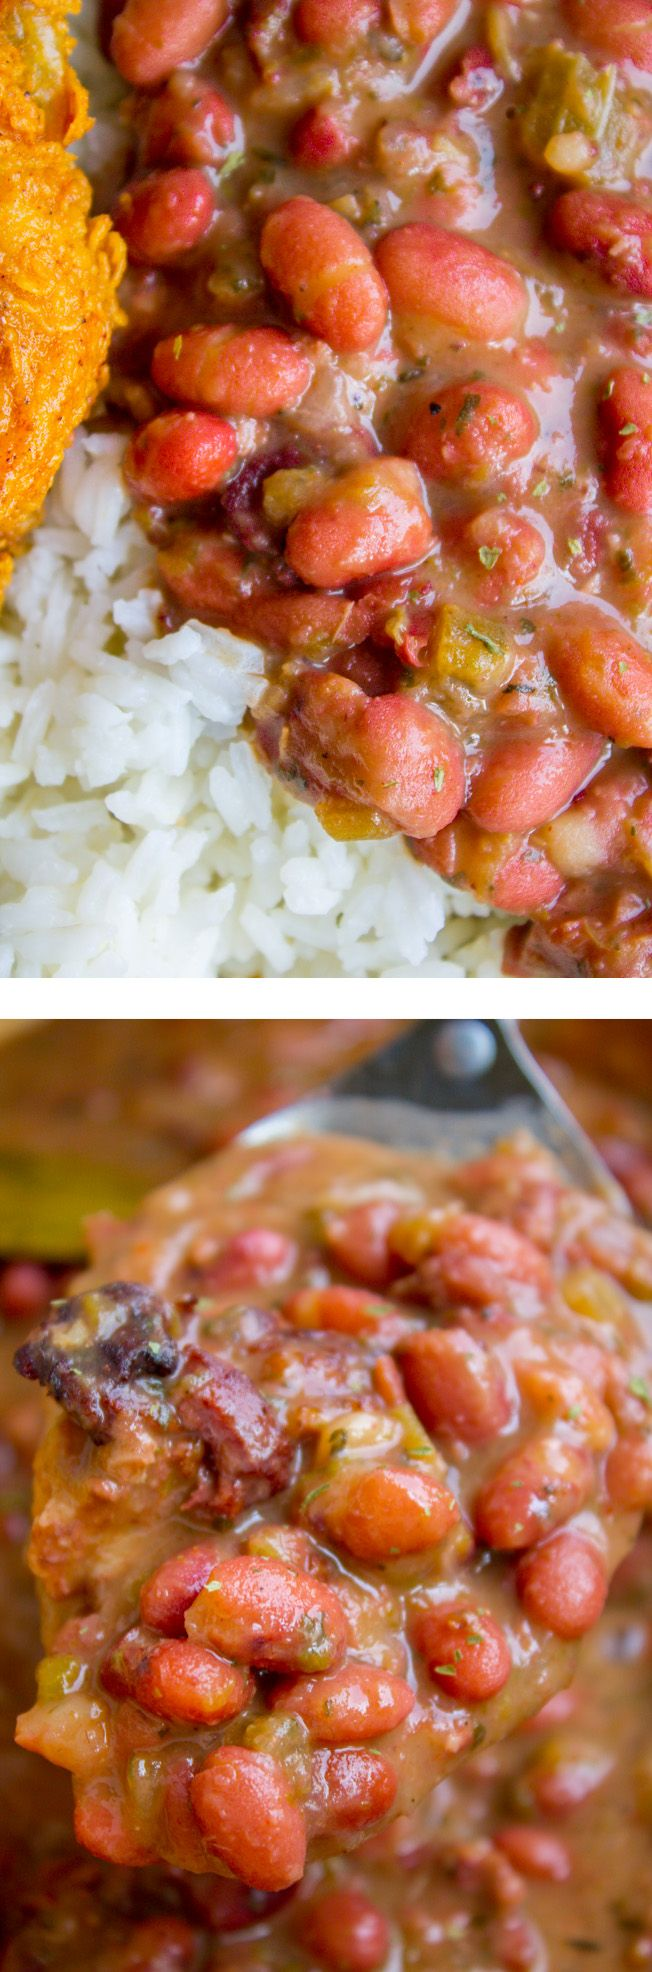 Red Beans and Rice (Better Than Popeye's!) from The Food Charlatan. Have you ever had traditional Red Beans and Rice? It's a southern staple! I tried Popeye's Red Beans and Rice for the first time a while back, but these beans are even better. They are so creamy and flavorful, with the perfect smoky Cajun spice!#redbeansandrice